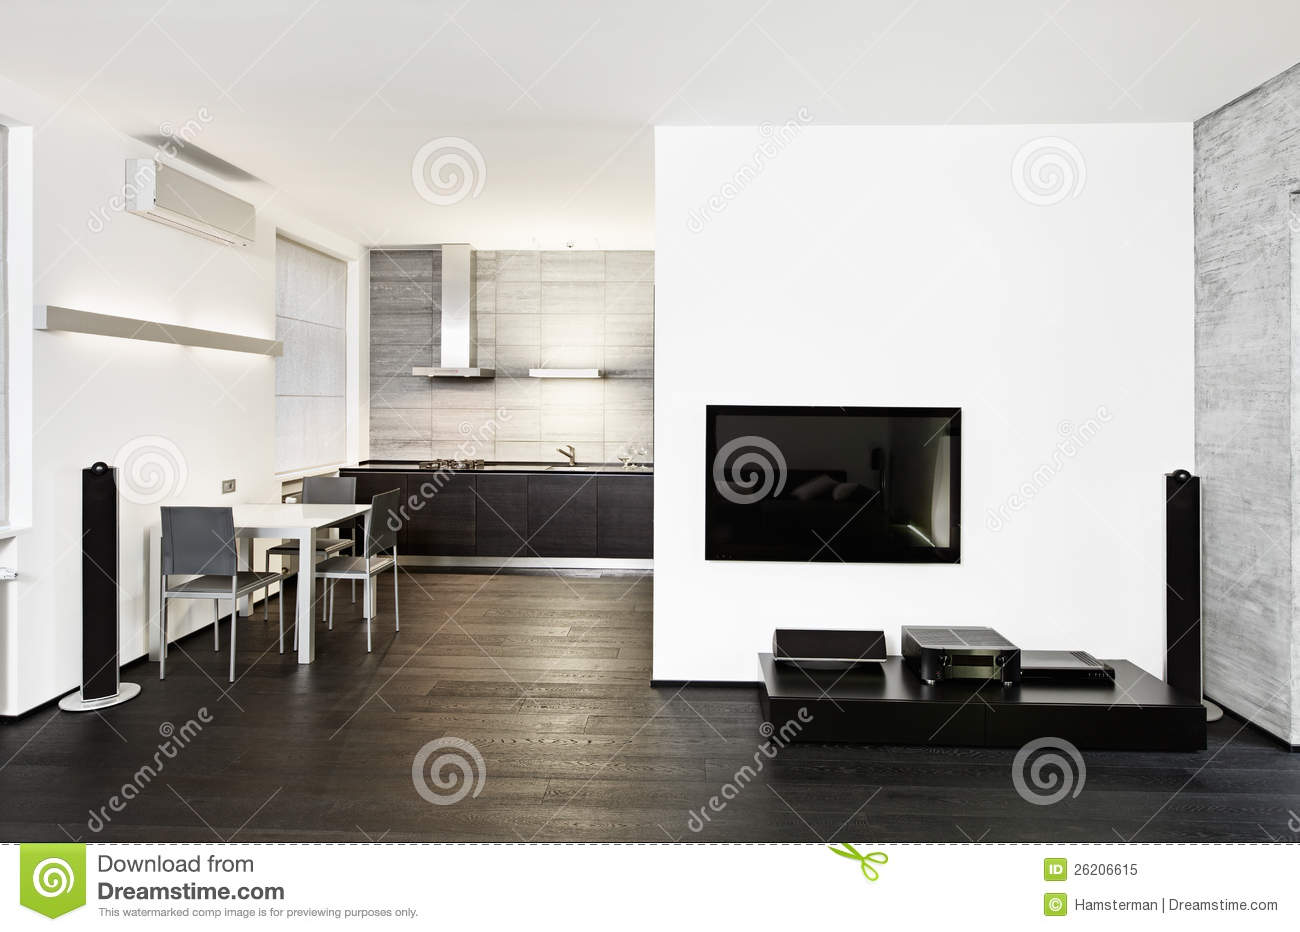 Int rieur moderne de cuisine et de salon photo libre de droits image 26206615 - Salon cuisine moderne ...